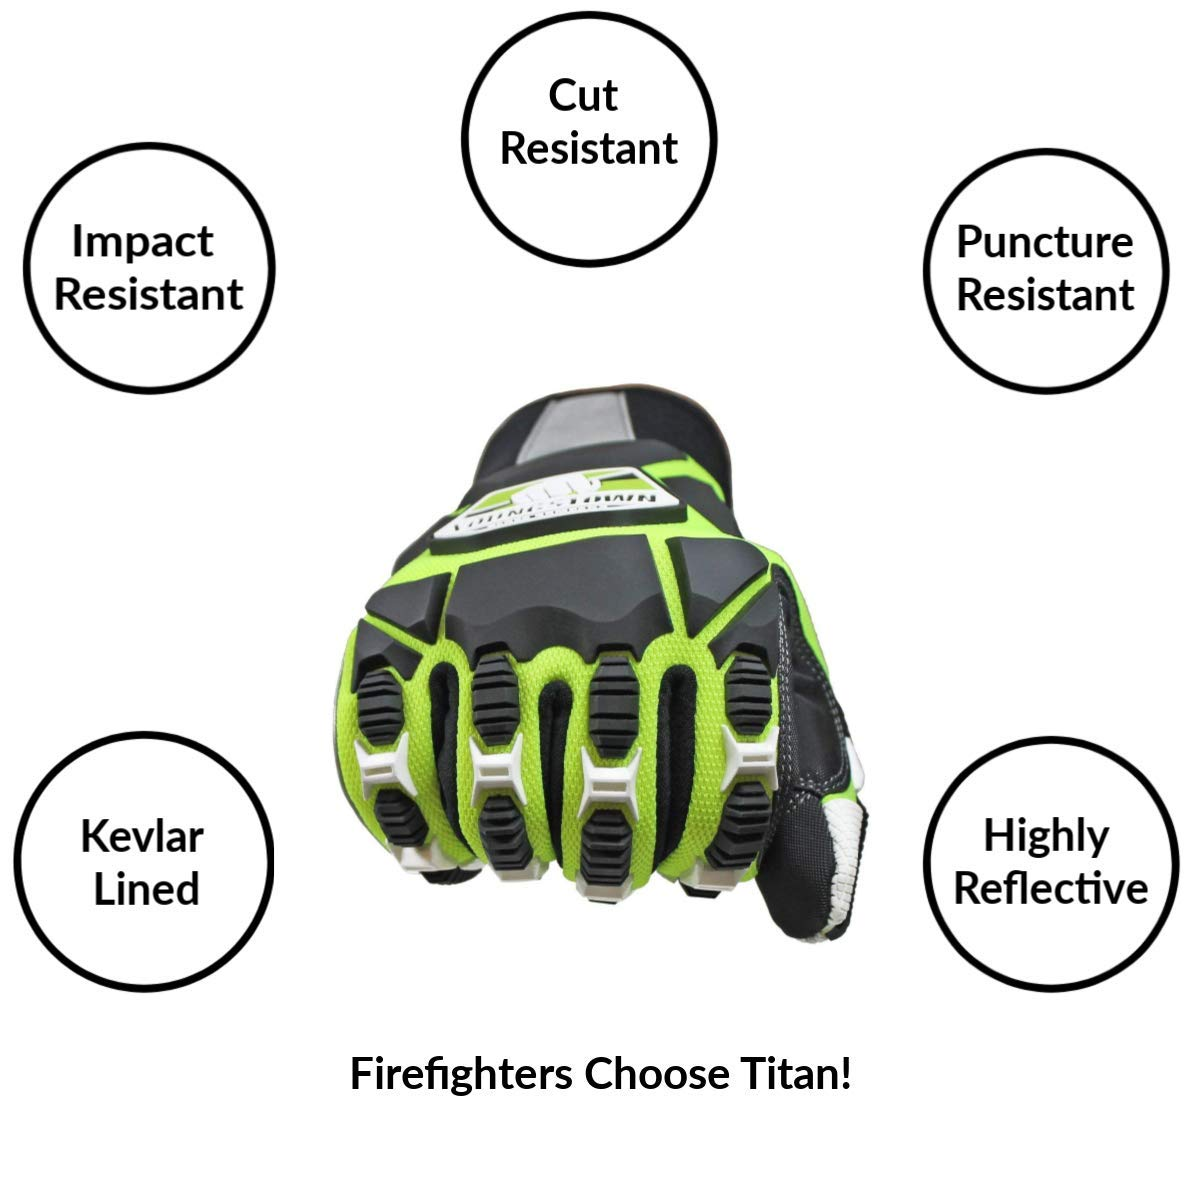 Cut Resistant Gloves Bundle - 1 - Firefighter Extrication Gloves (Large) | 1 - Glove Strap (lime Green) | 1 - Firefighter Journal (Track training hours, Run activities, work, ect.) by Generic (Image #2)